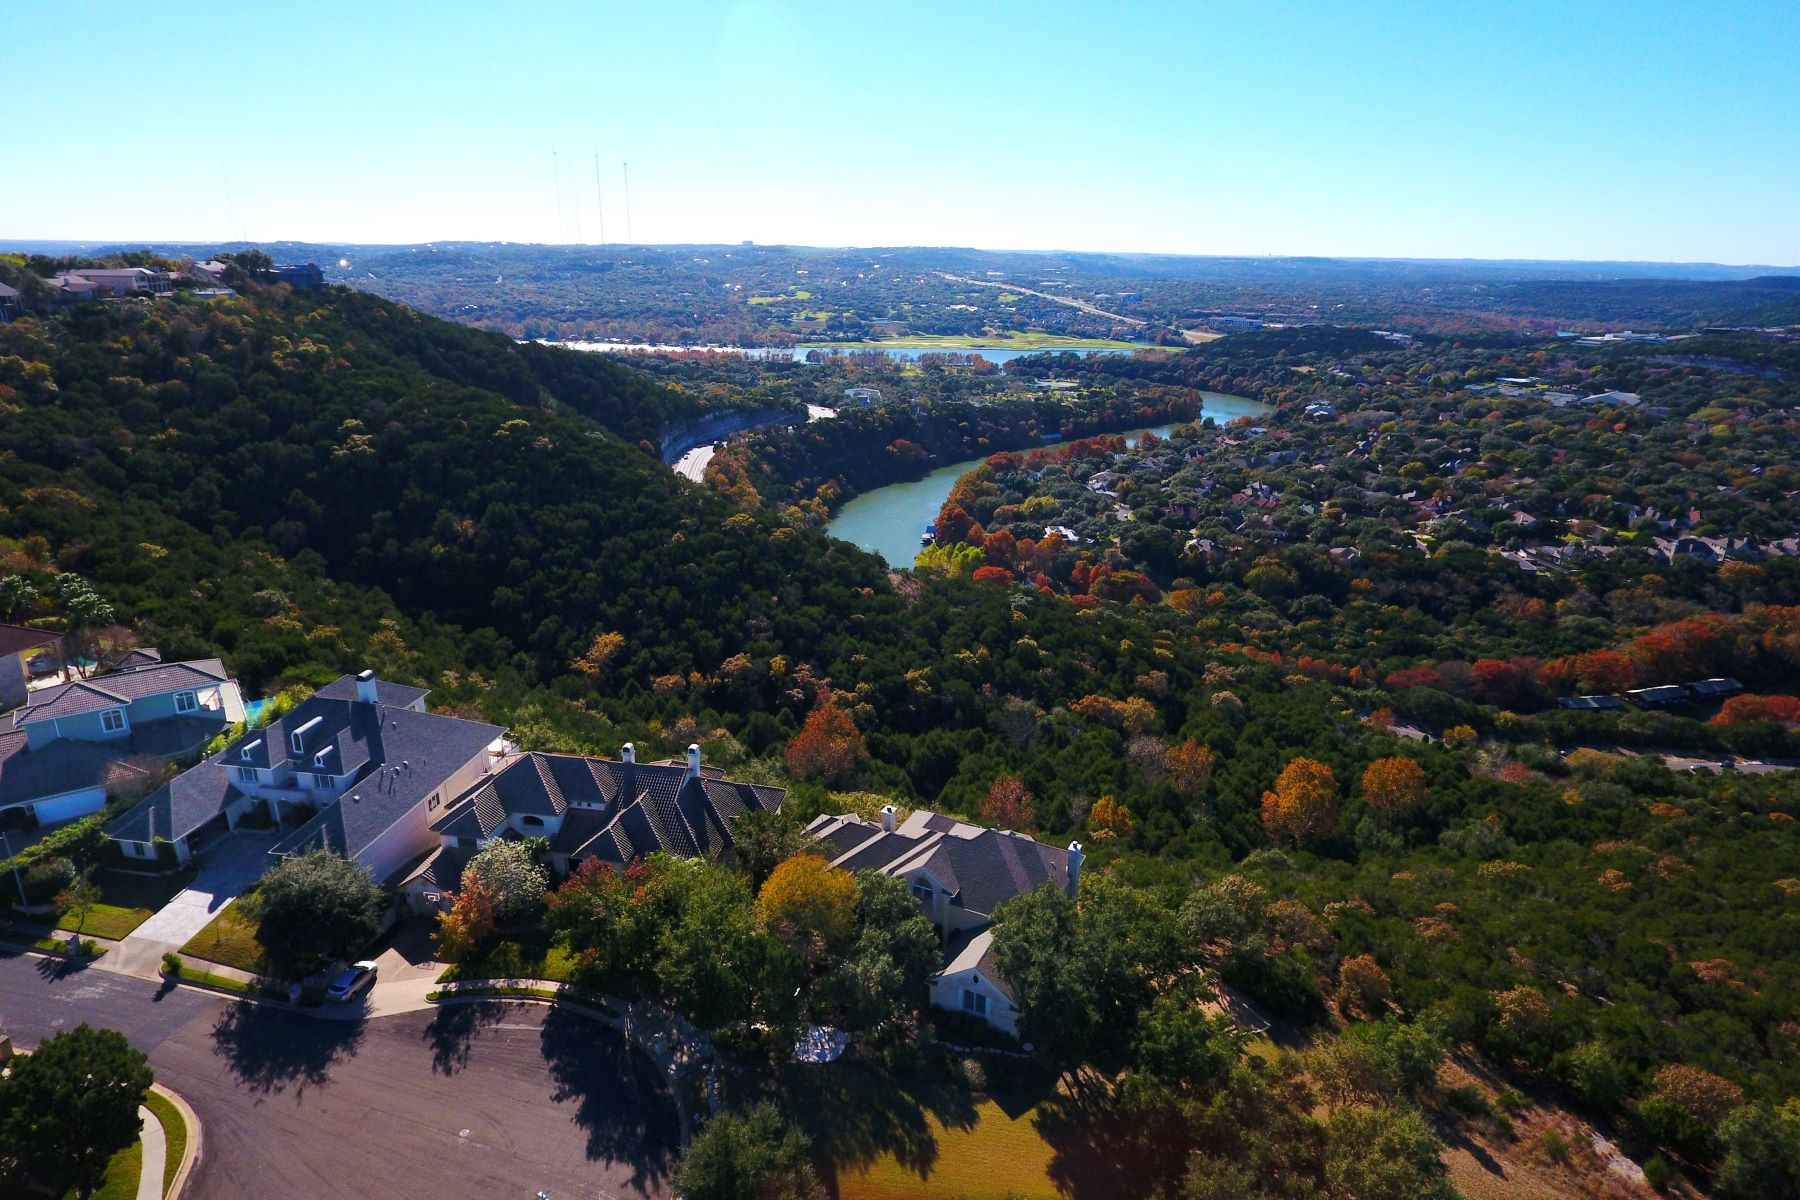 Single Family Home for Sale at One in A Million Panoramic Views 4747 Cat Mountain Dr Austin, Texas 78731 United States